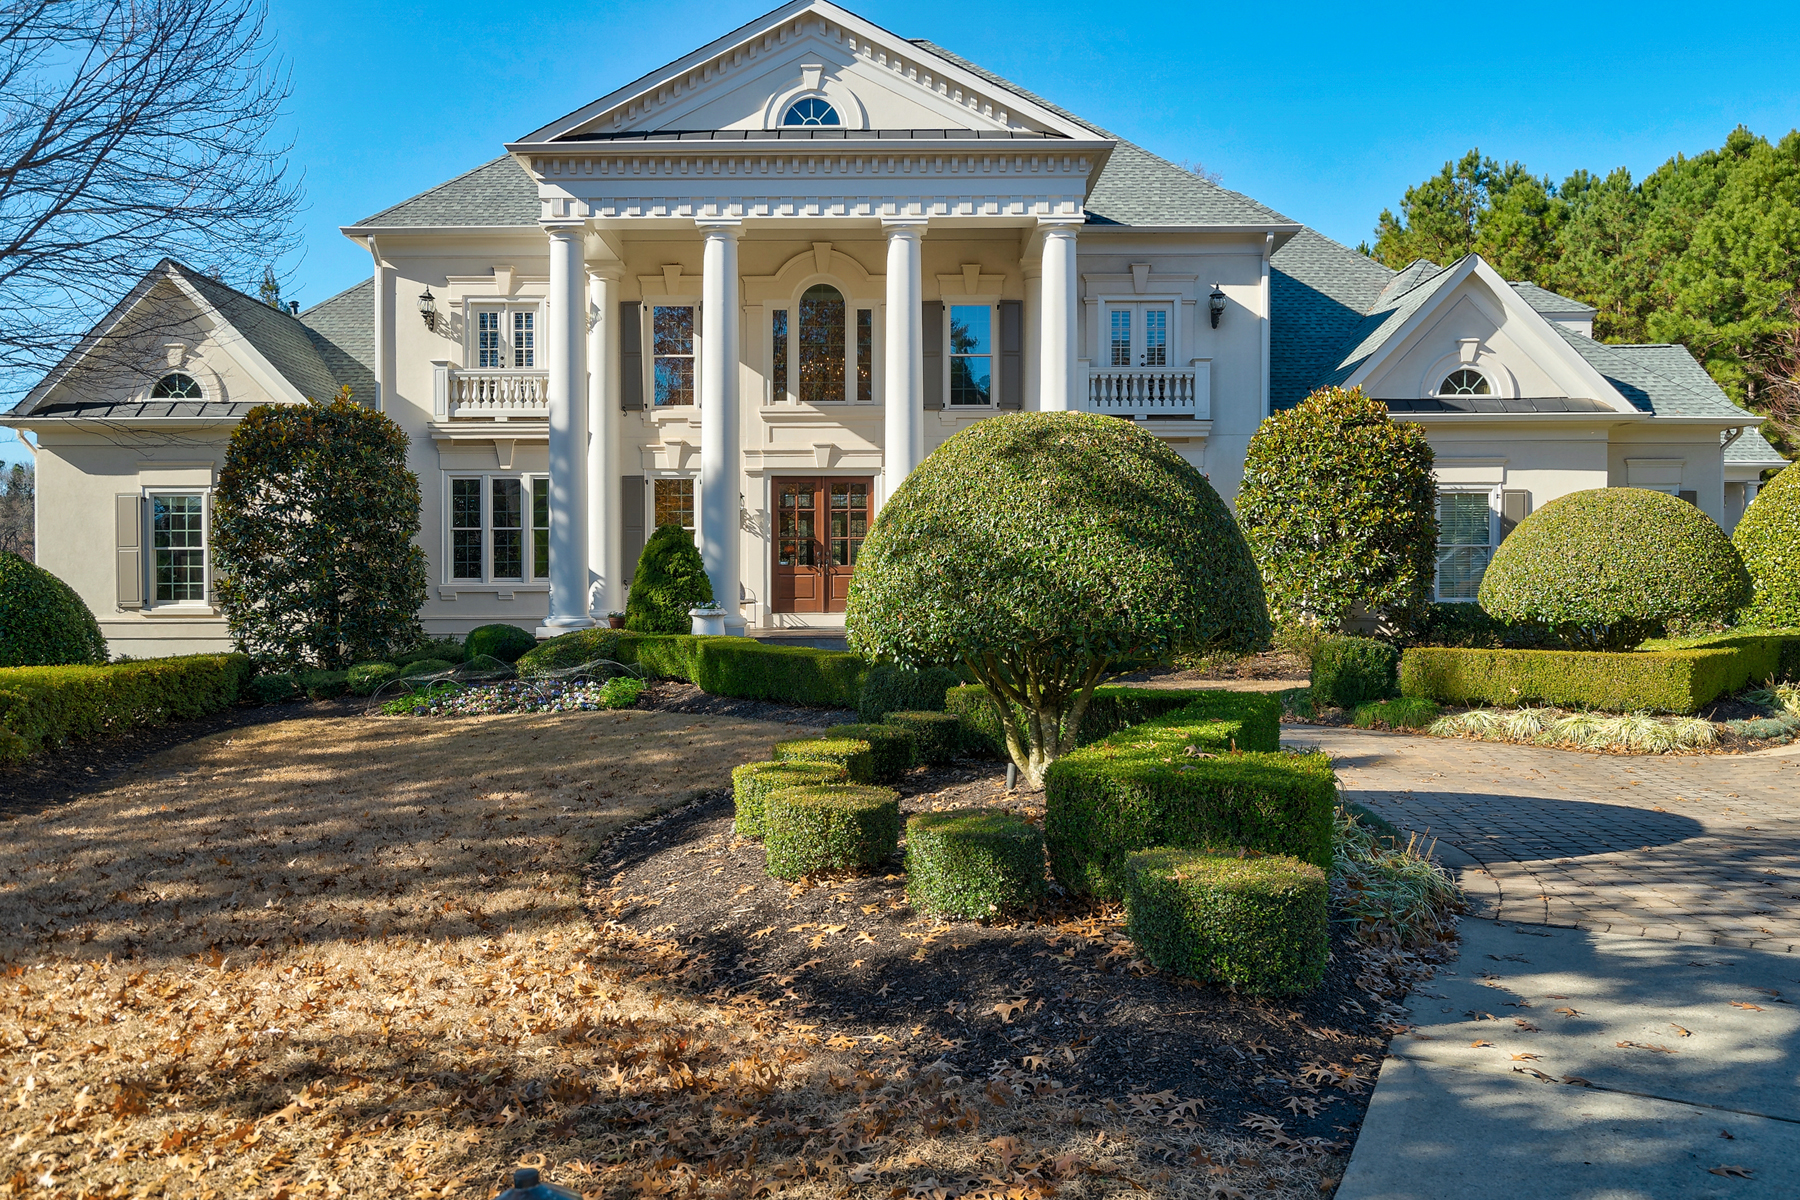 Single Family Home for Sale at Stunning Southern Charm With Beautiful English Garden 2411 Lockerly Pass Duluth, Georgia 30097 United States